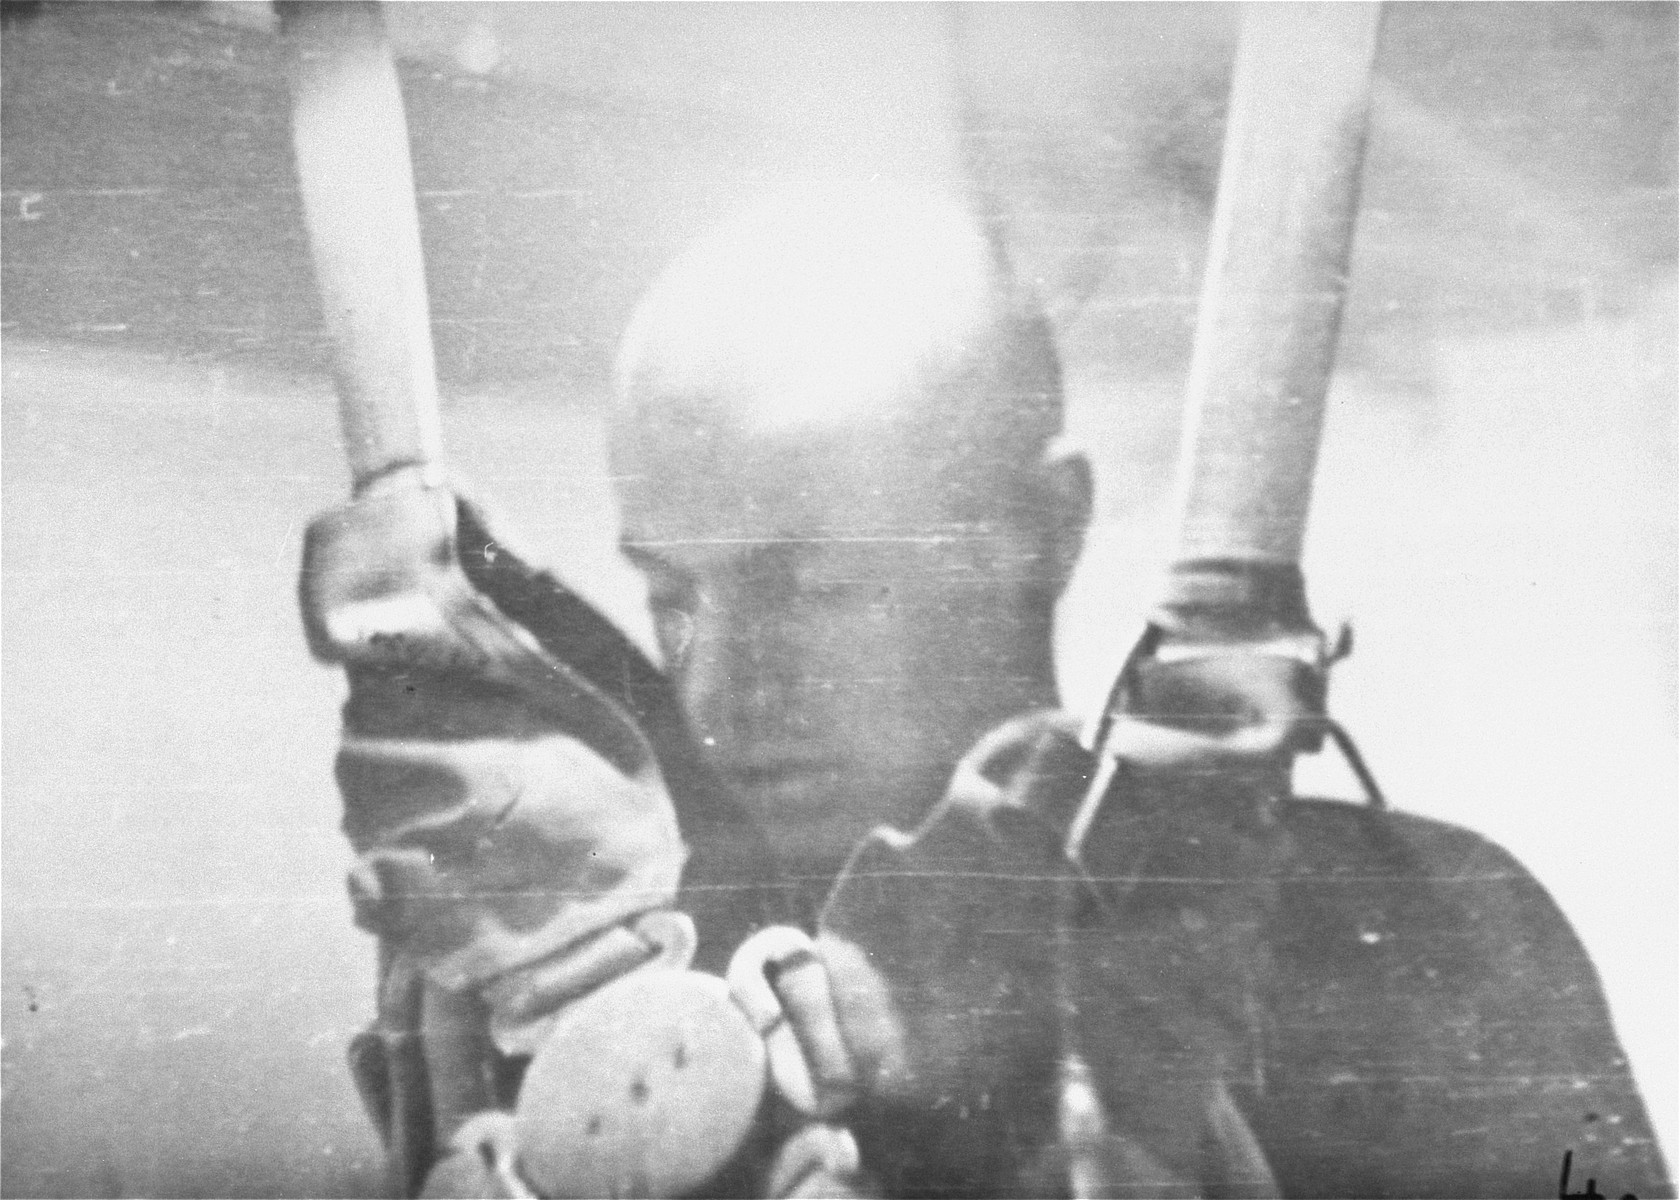 A prisoner in a special chamber falls into unconsciousness after being subjected to low pressure experimentation.  For the benefit of the Luftwaffe, air pressures were created comparable to those found at 15,000 meters in altitute, in an effort to determine how high German pilots could fly and survive.